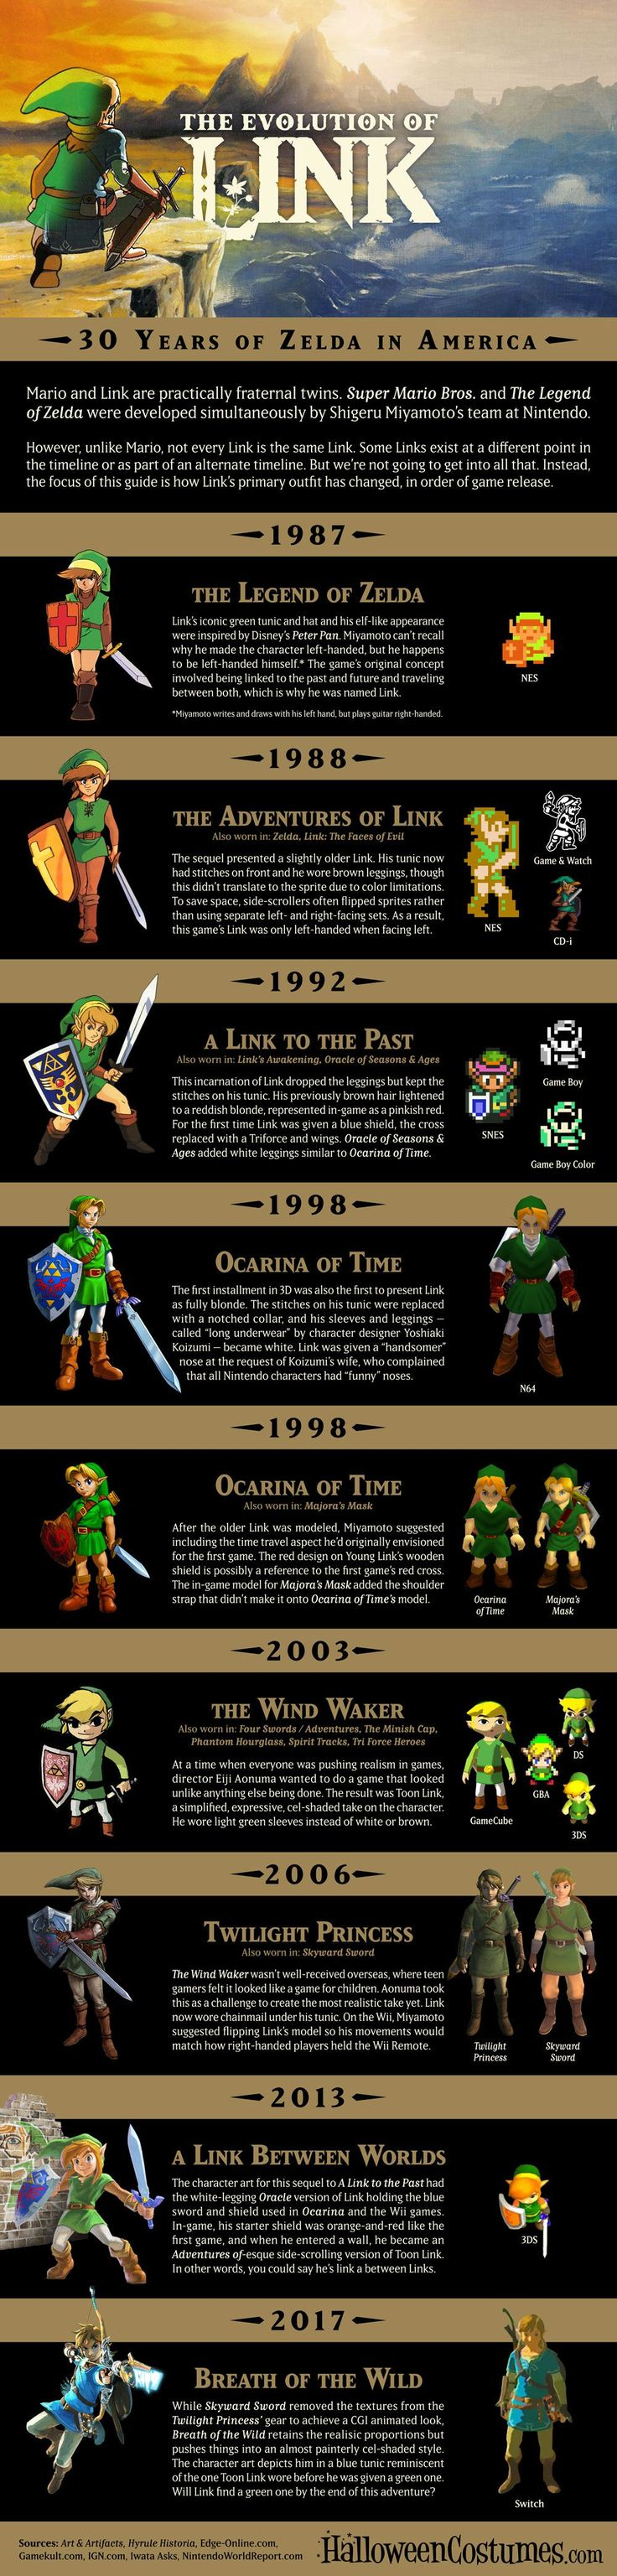 Celebrate the release of Nintendo Switch and Legend of Zelda: Breath of the Wild by checking out the evolution of Link over the franchise's history!